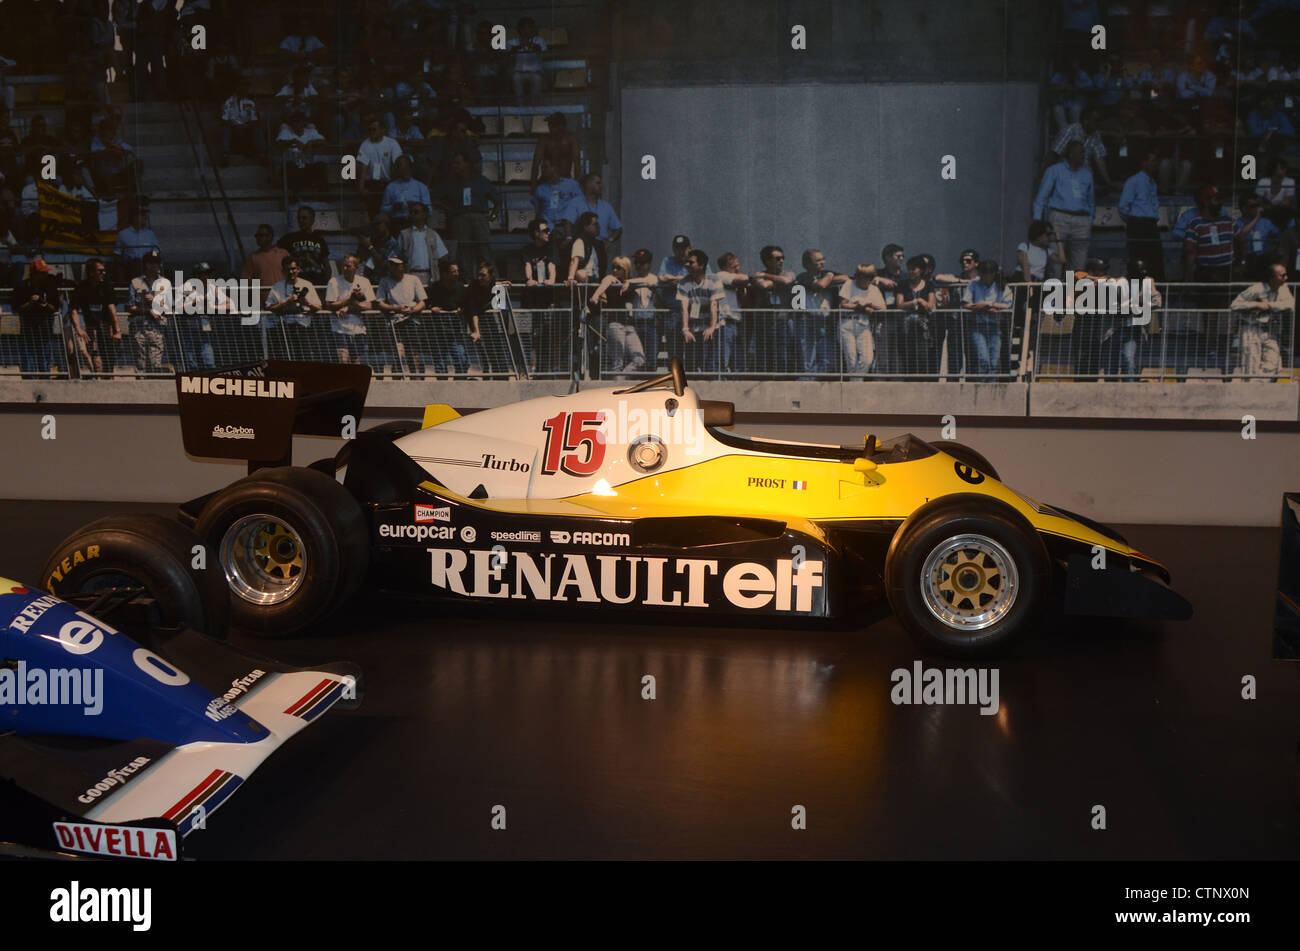 Formula 1 car in the Cite l'Automobile  (city of cars) ,Mulhouse, France - Stock Image